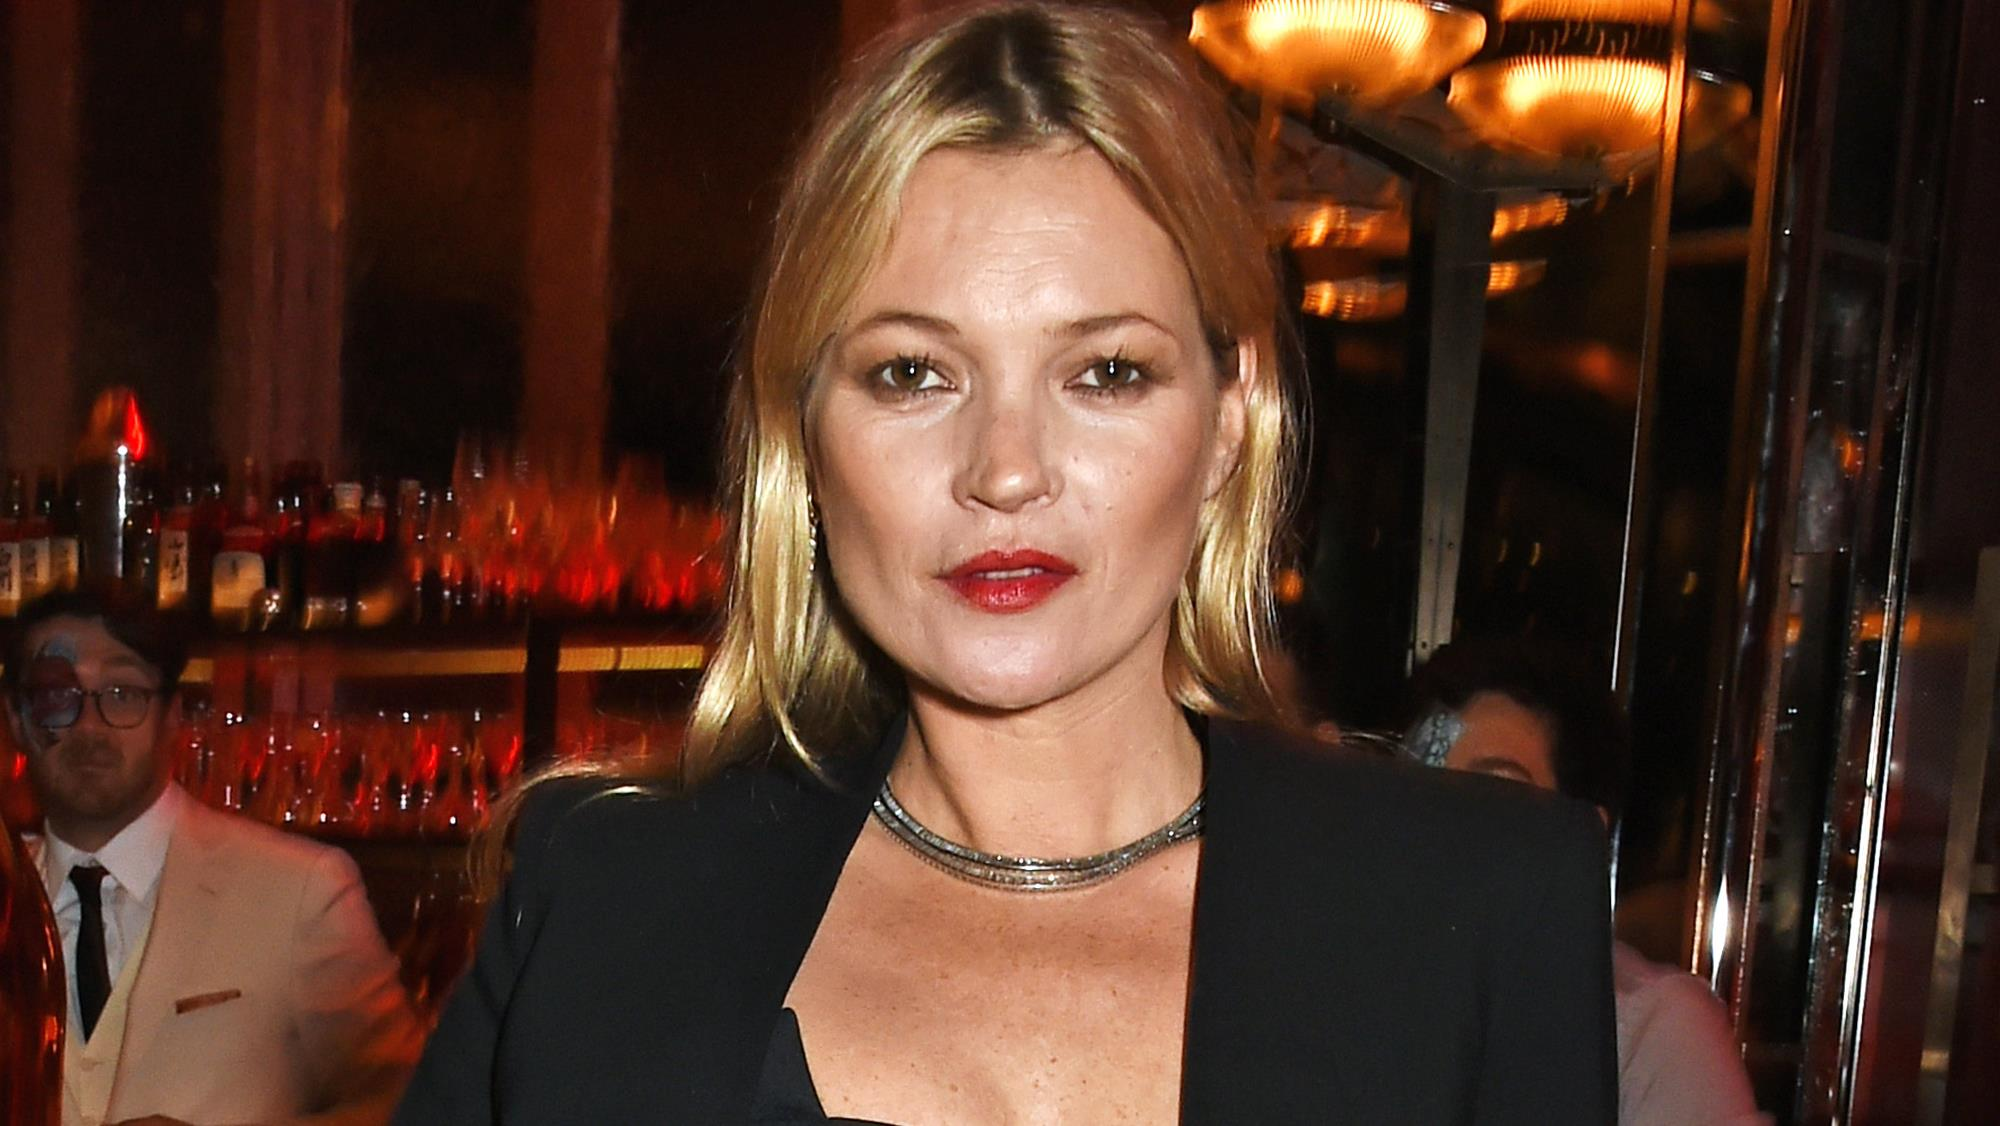 Kate Moss' David Bowie tribute party was better than yours